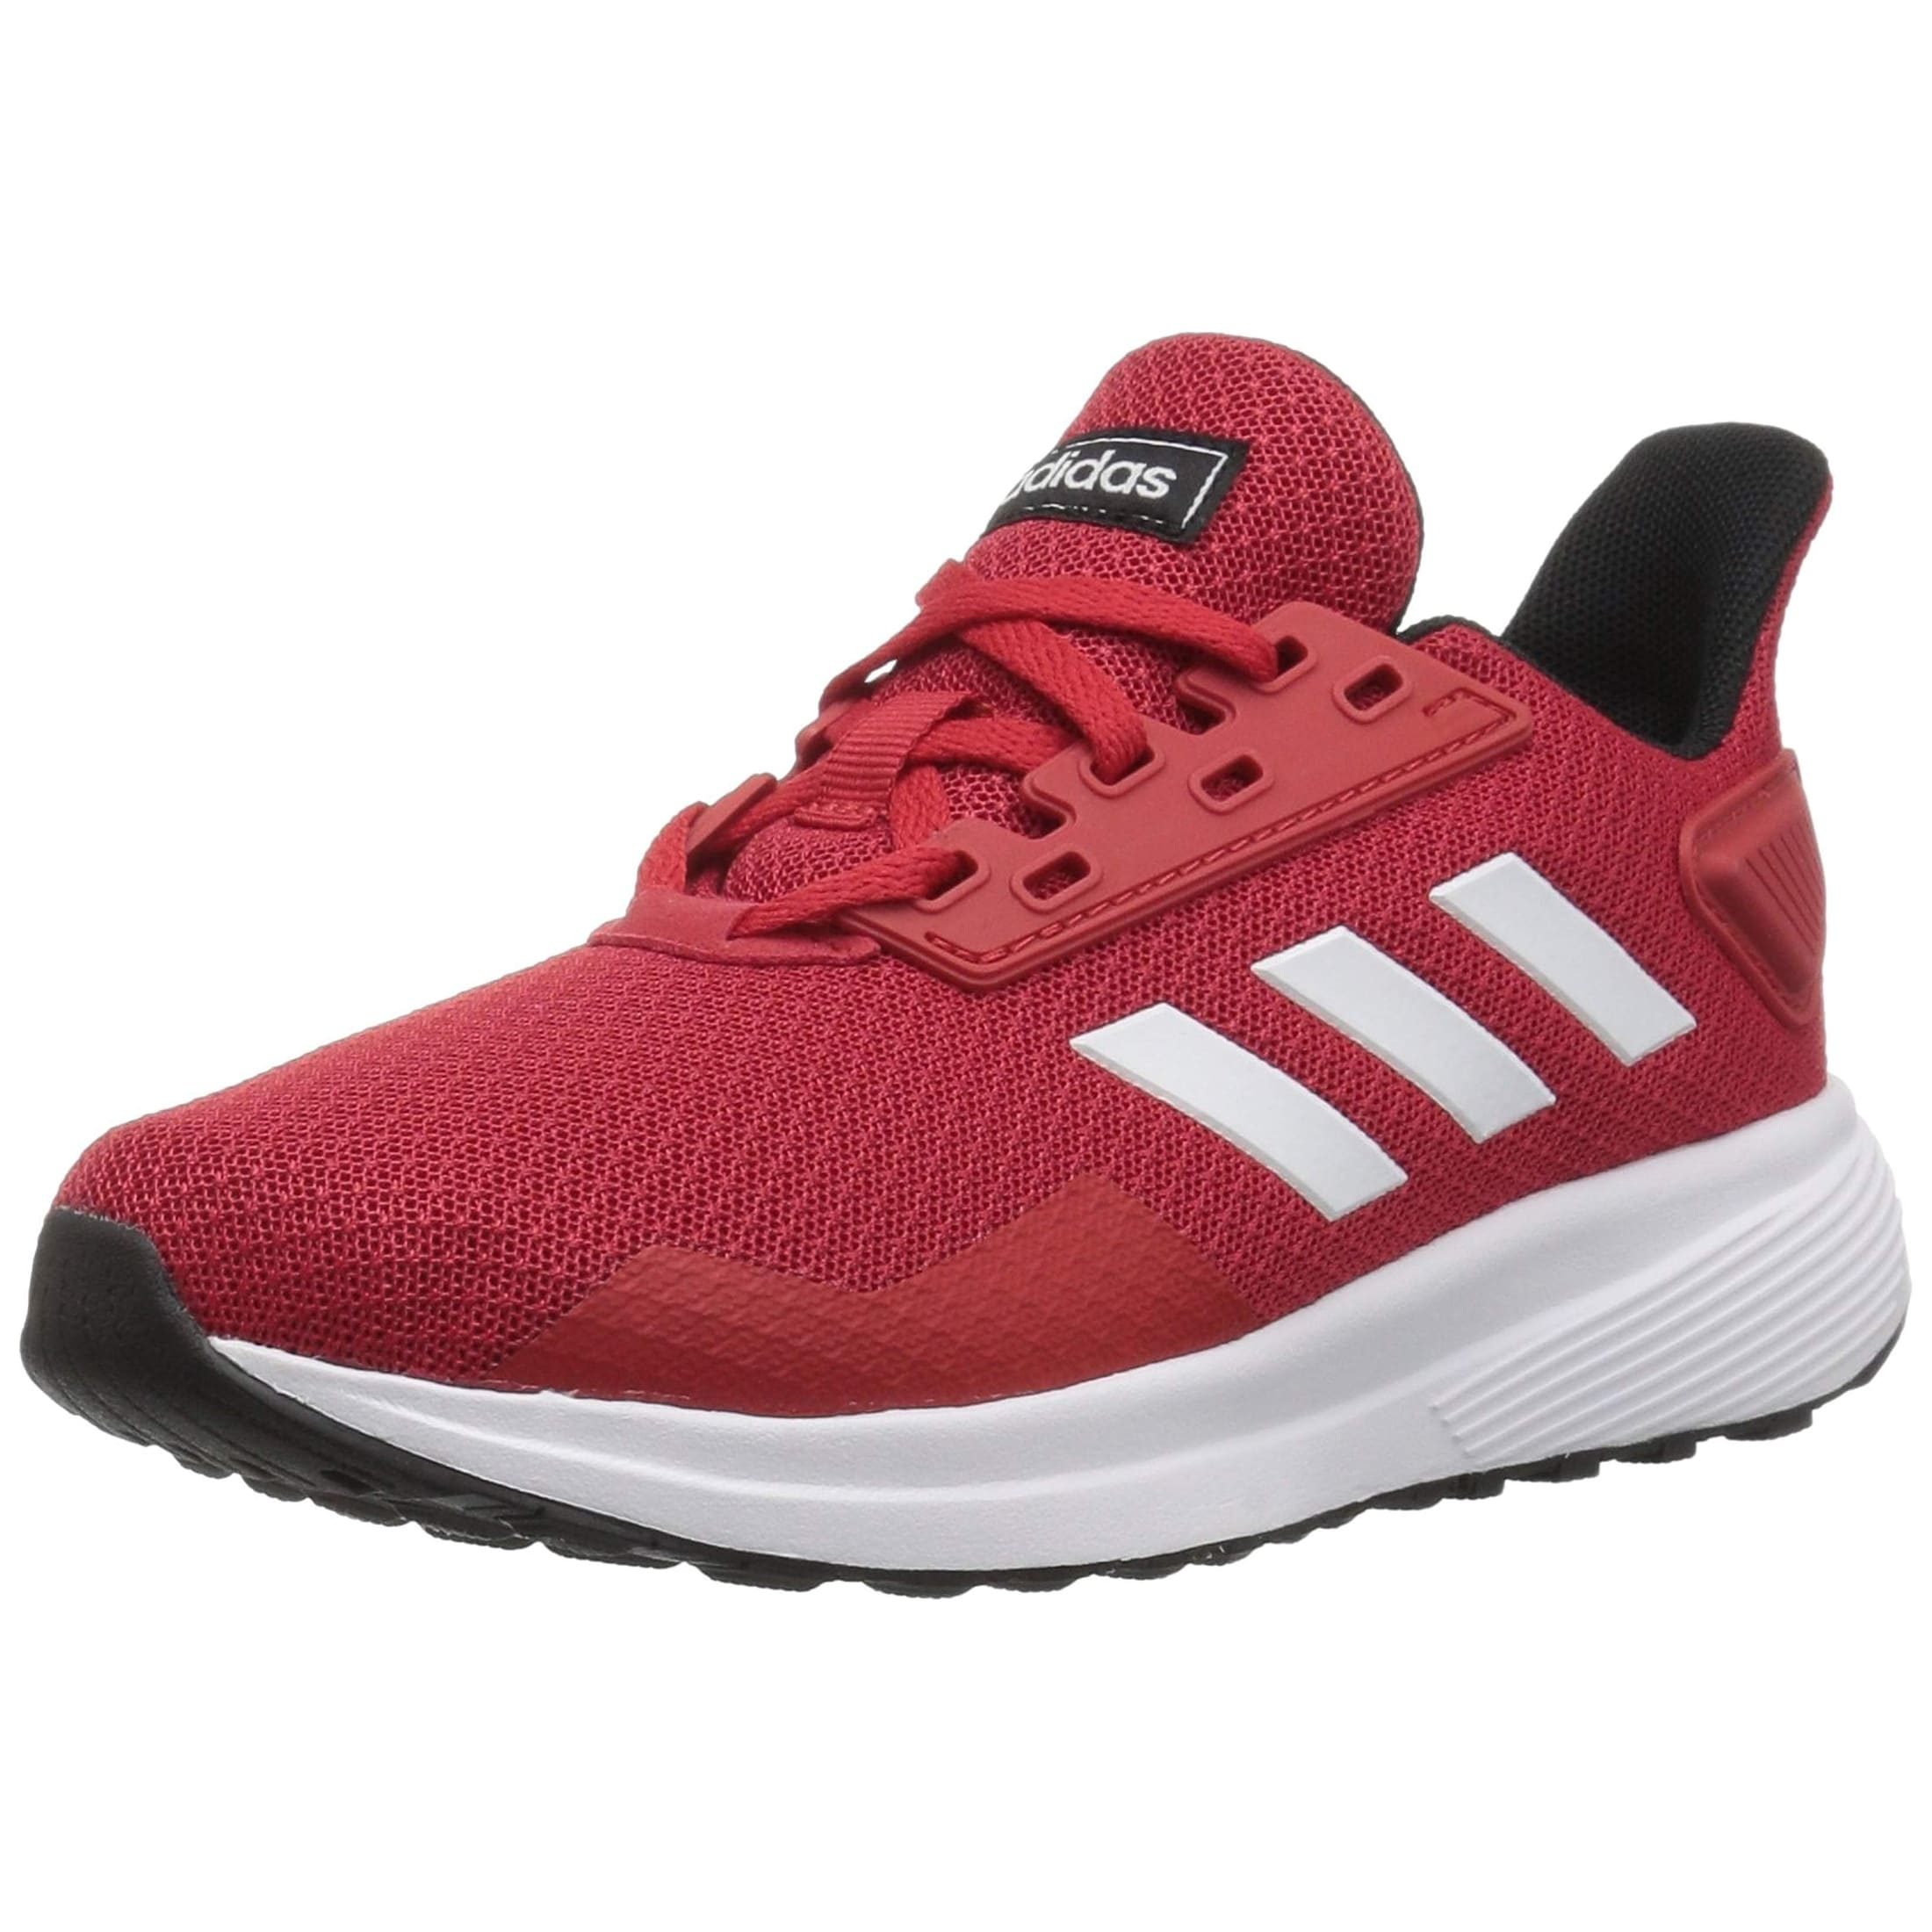 ad644dffd7a Shop Adidas Performance Unisex-Kids Duramo 9 K Running Shoe